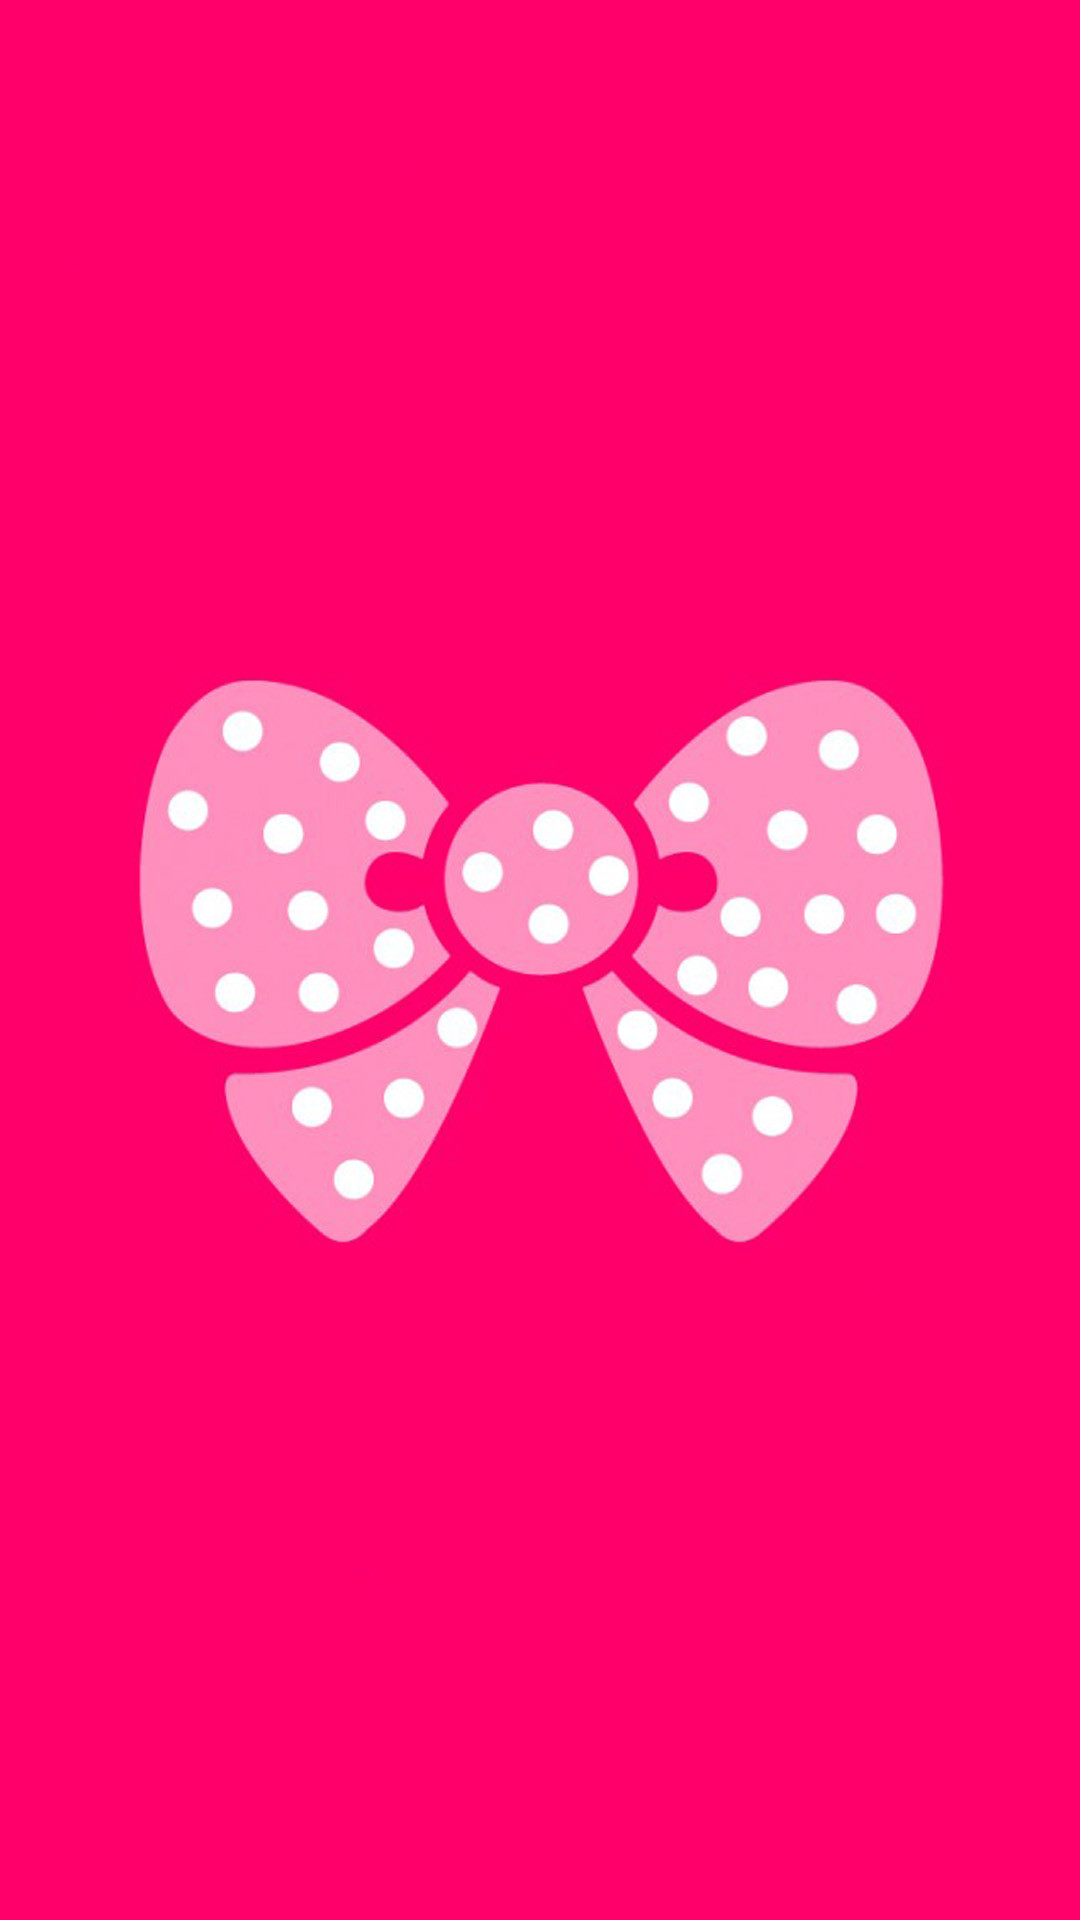 Girly wallpaper for iphone 5